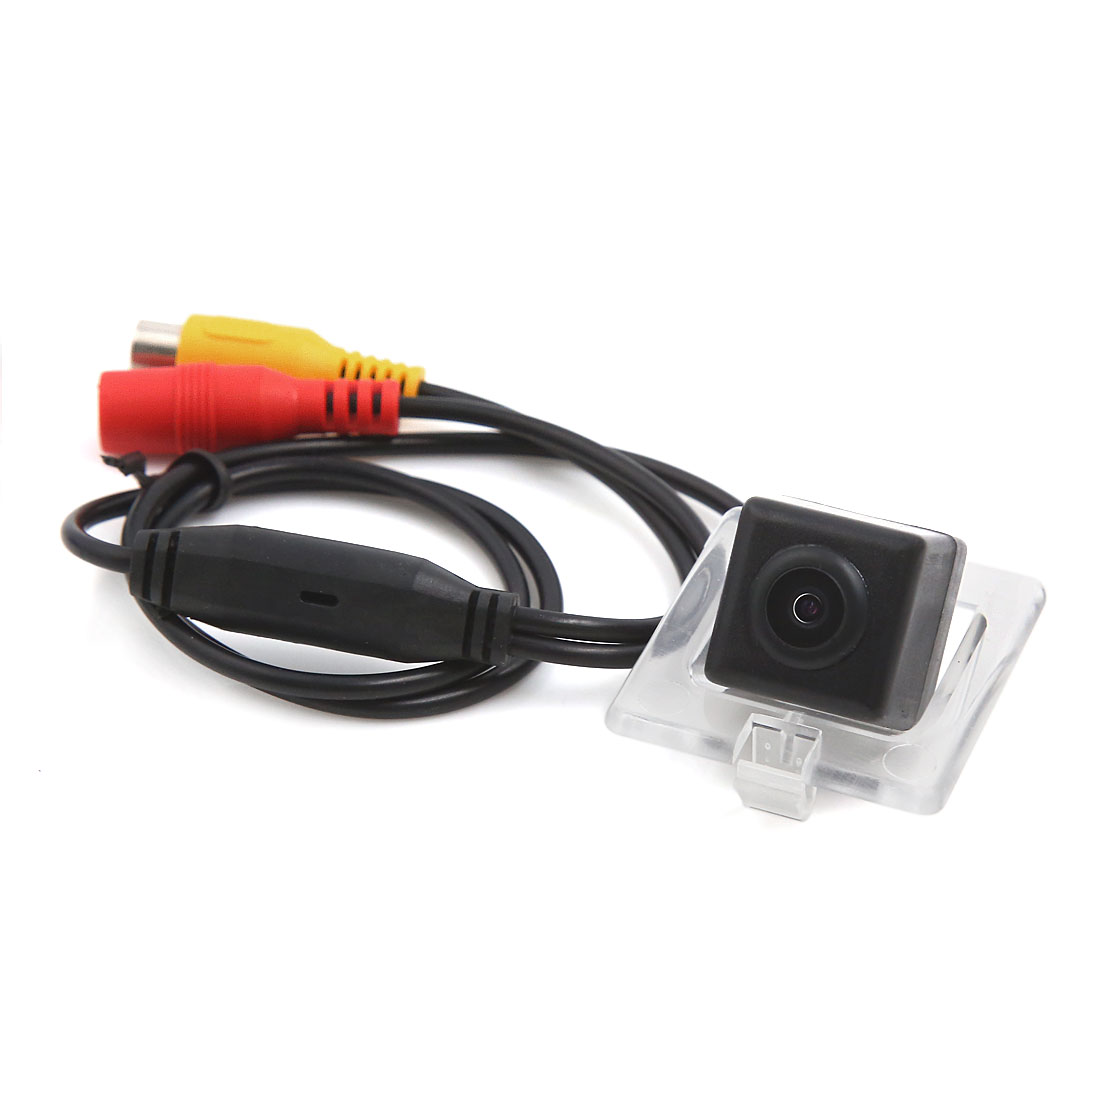 480 TVL 170 Degree HD Rear View Reverse Backup Parking Camera for Toyota Prado